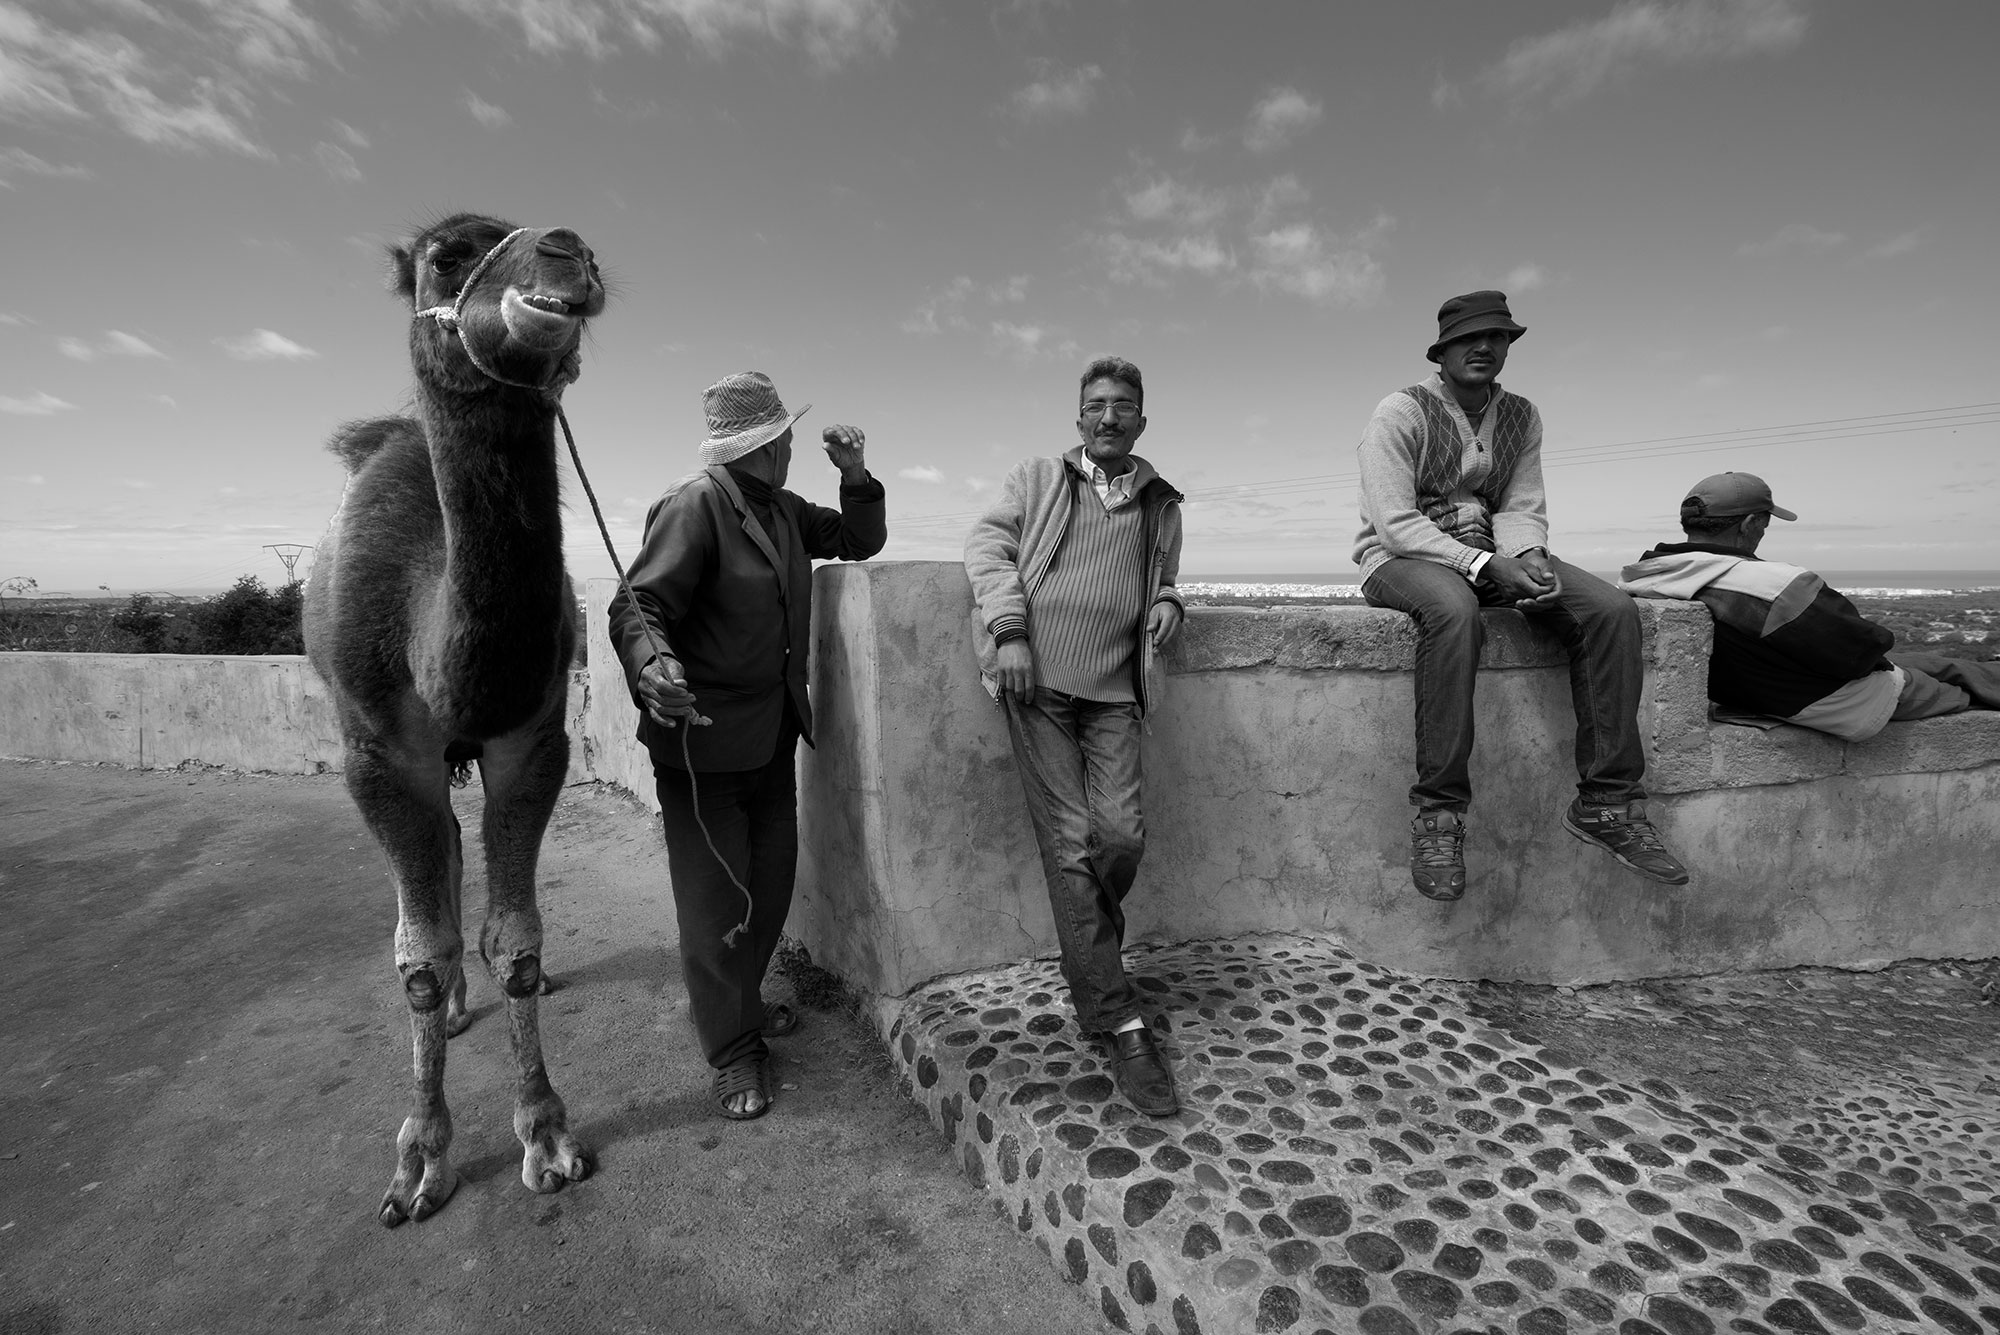 Waiting for Tourists, Morocco